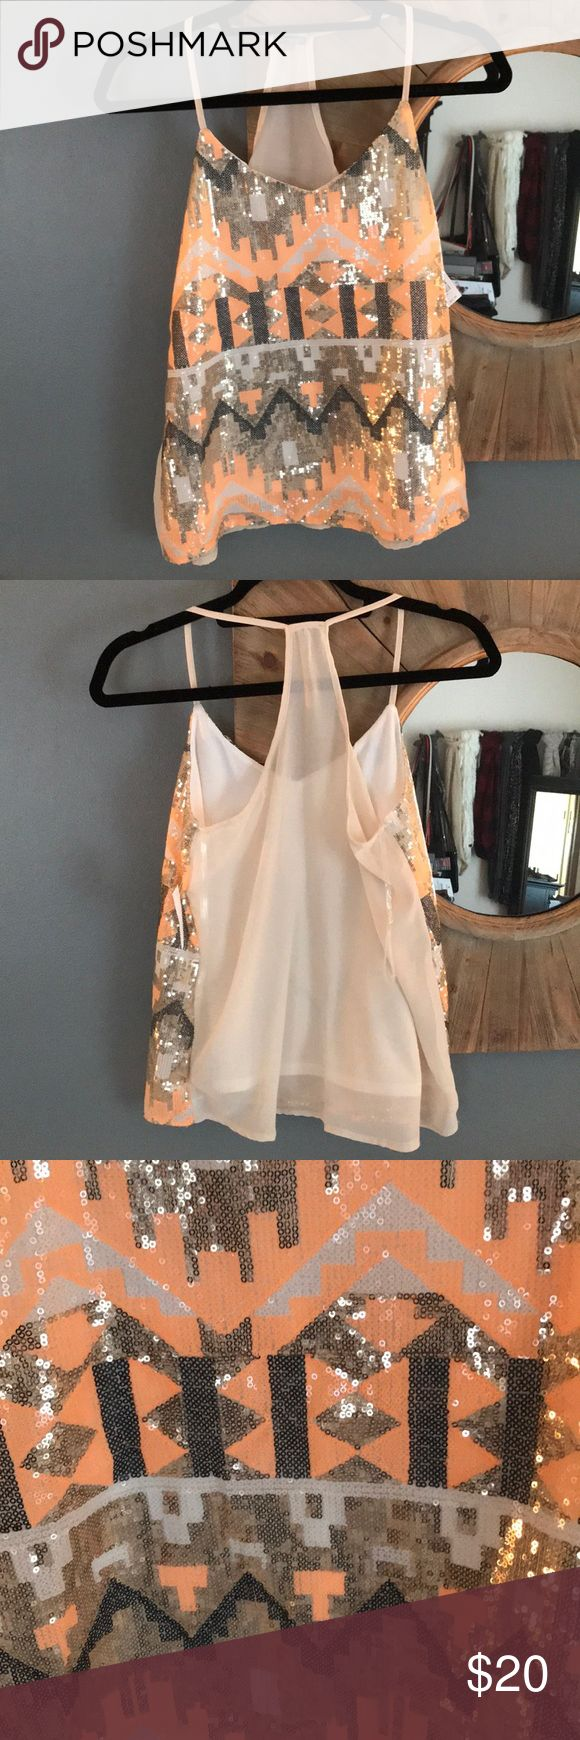 Aztec sequined tank top NWT Charlotte Russe sequined tank top. Women's size S. Polyester. Stunning Aztec print in black, gold, white and peach. Racer Back and also the back is completely sheer. Charlotte Russe Tops Tank Tops